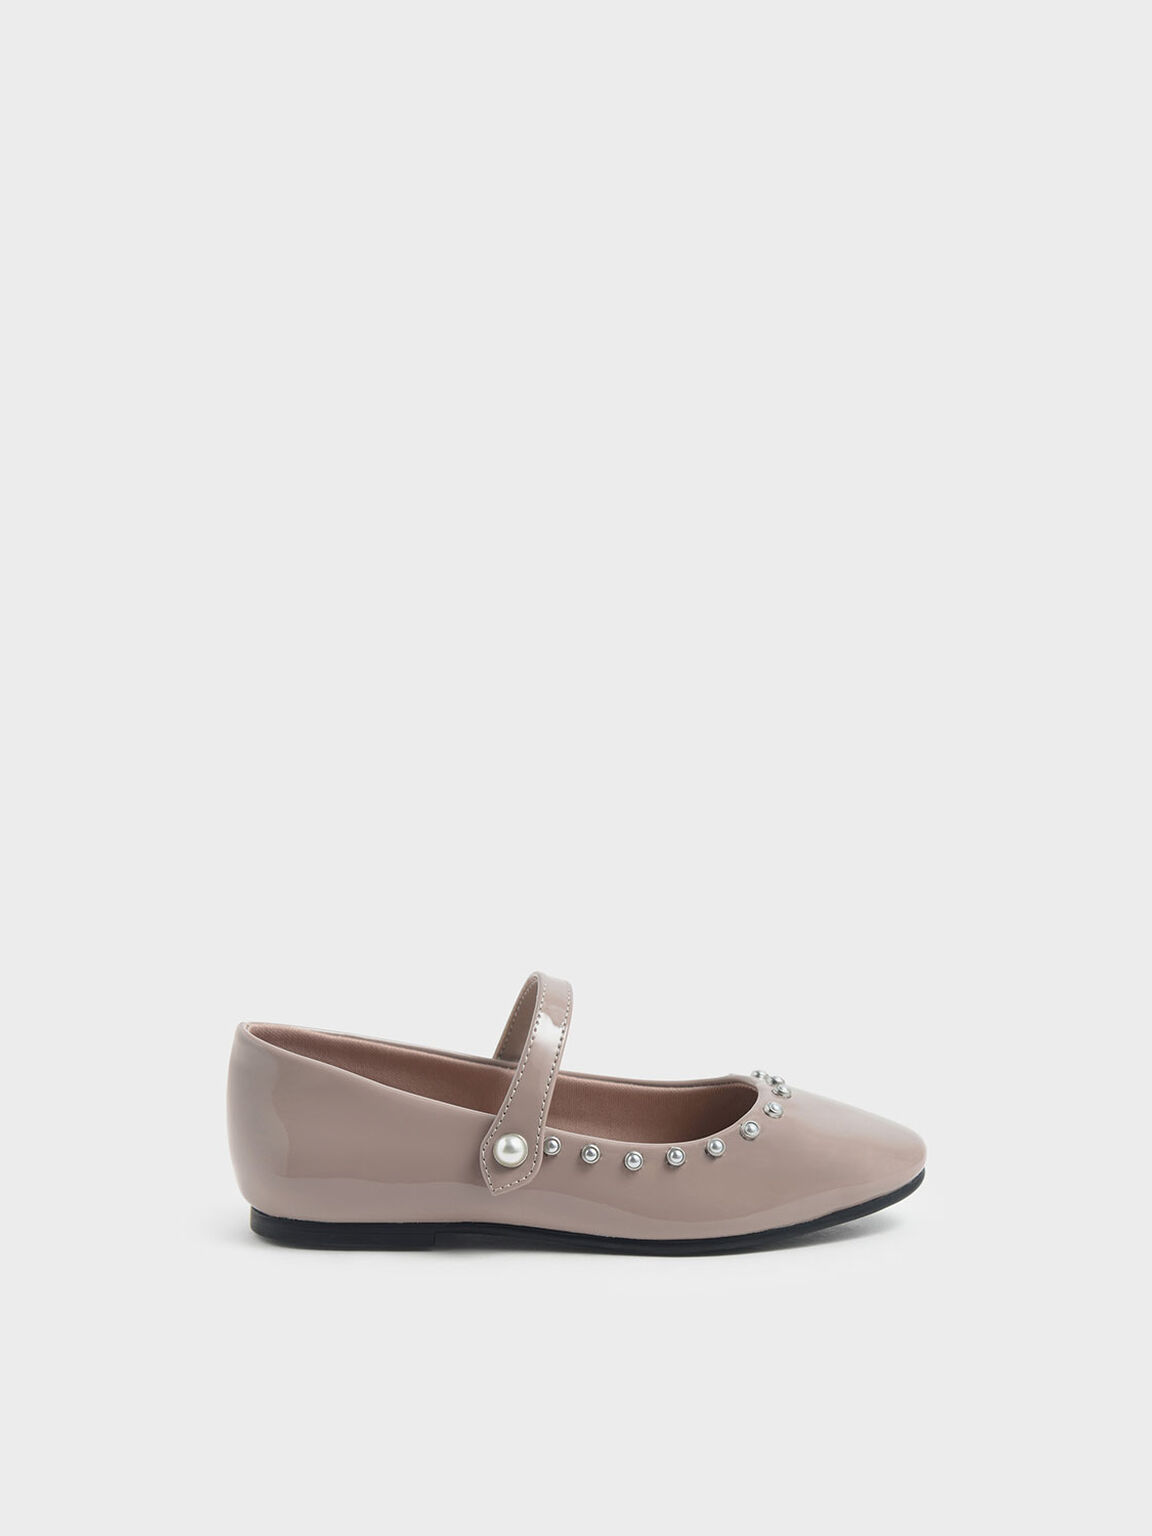 Girls' Embellished Trim Patent Mary Jane Flats, Nude, hi-res